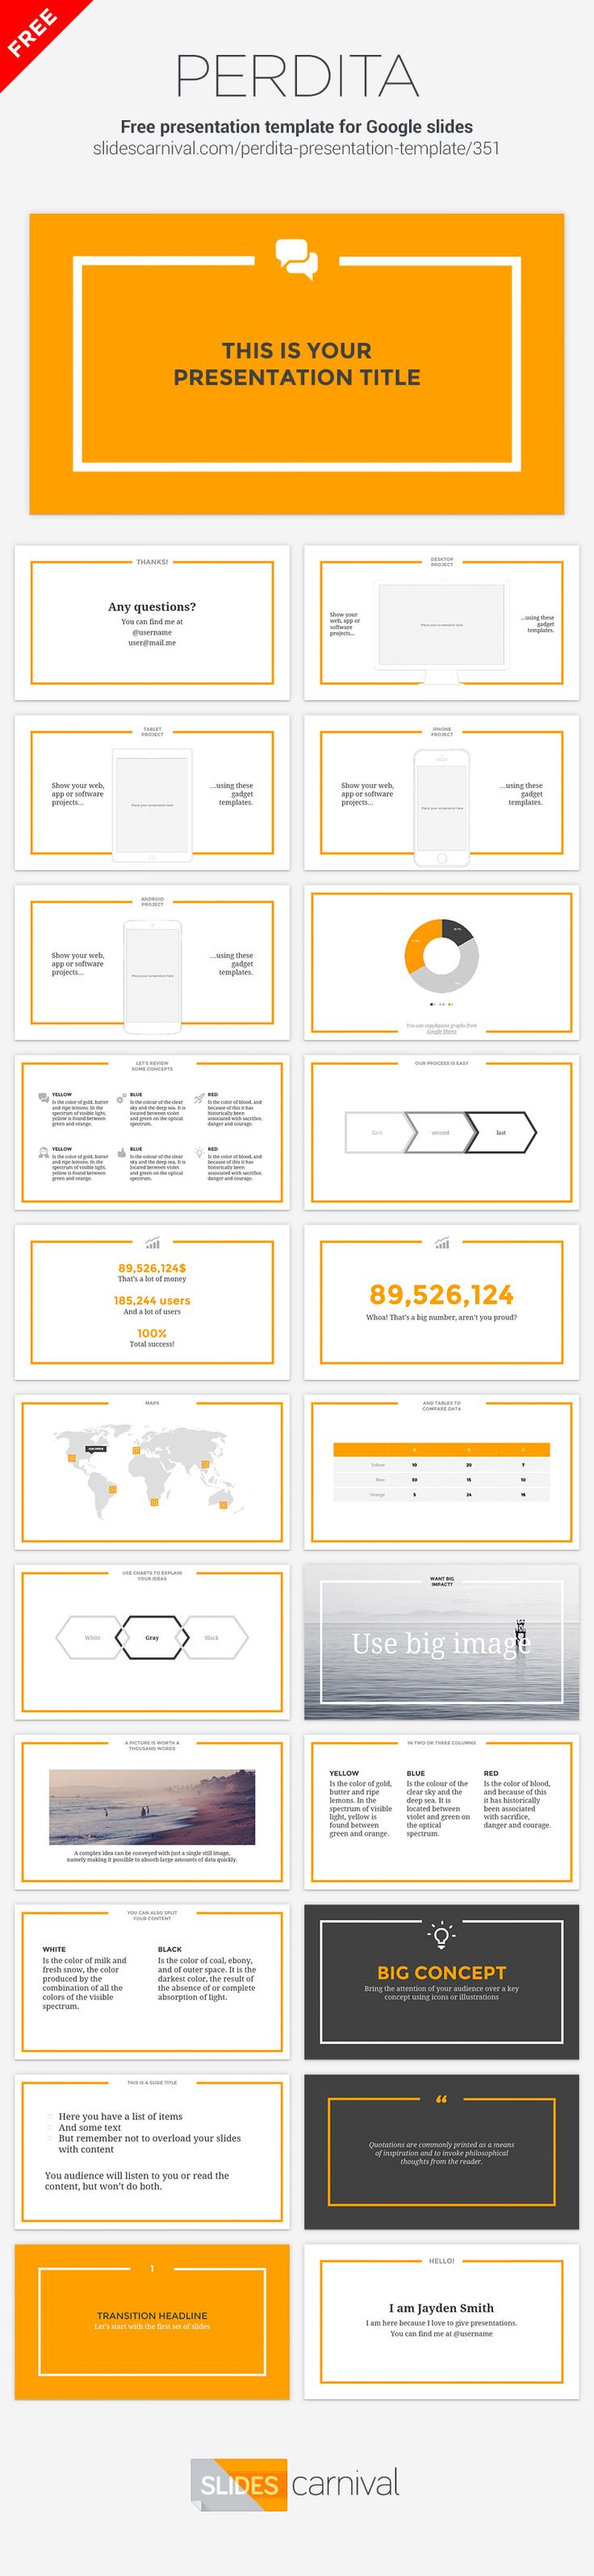 With an elegant layout but using bright orange as a single accent color to make it bolder and memorable, your content will shine with this lively and modern design. Orange doesn't suit you? No problem, you can change it to red, blue, green, etc to adapt it to any brand and the design will still be gorgeous.